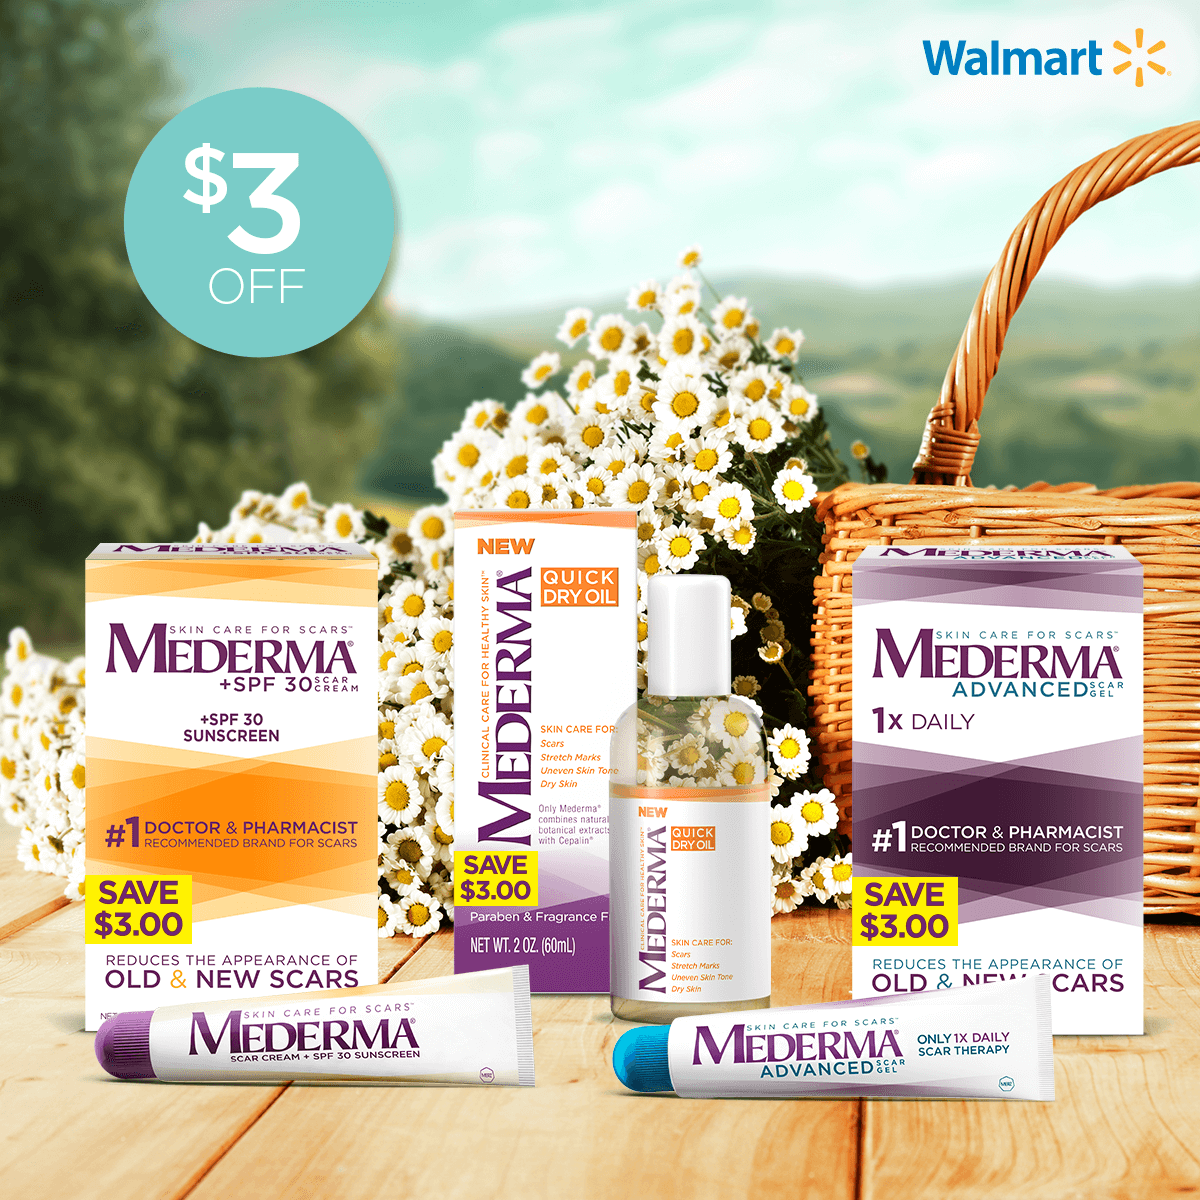 Mederma On Twitter Take 3 Off Select Mederma Scar Products At